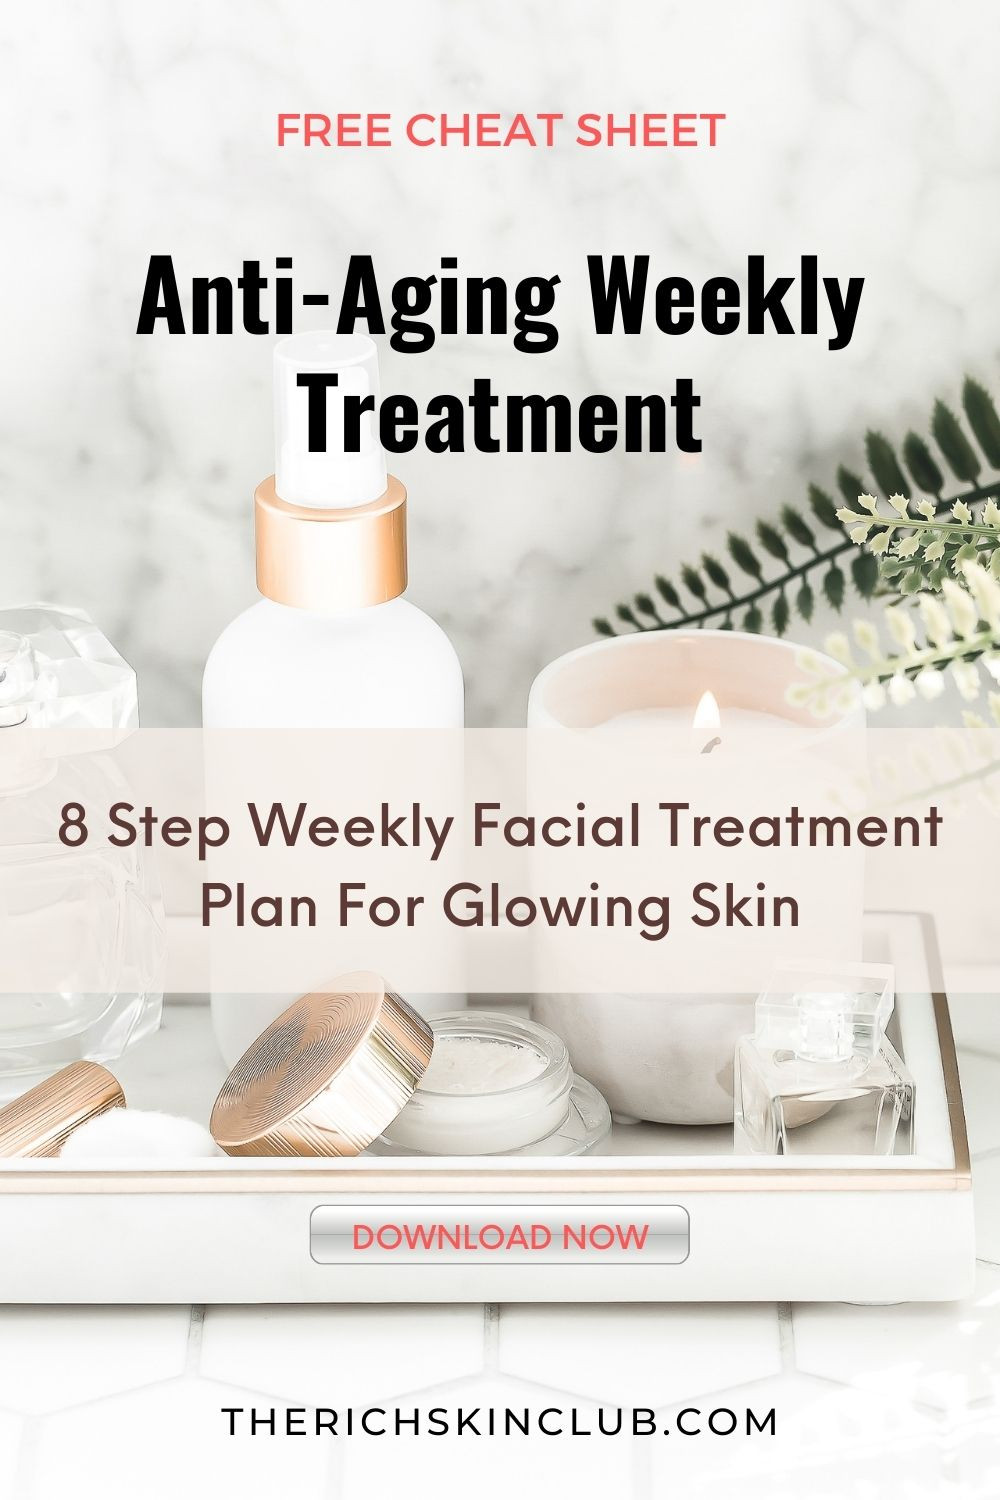 Treat Your Skin To A Professional At-Home Facial. A weekly facial is a MUST for your anti-aging skincare regime. Get my pro steps for a DIY facial that will deep steam clean your pores, and leaving your skin hydrated and glowing! Click the pin for an easy 8 step at-home facial that includes cleansers, toners, moisturisers, serums and face masks for every skin type. Download the free CHEAT SHEET so you don't miss a step!  #diyfacial #glowingskin #homefacial